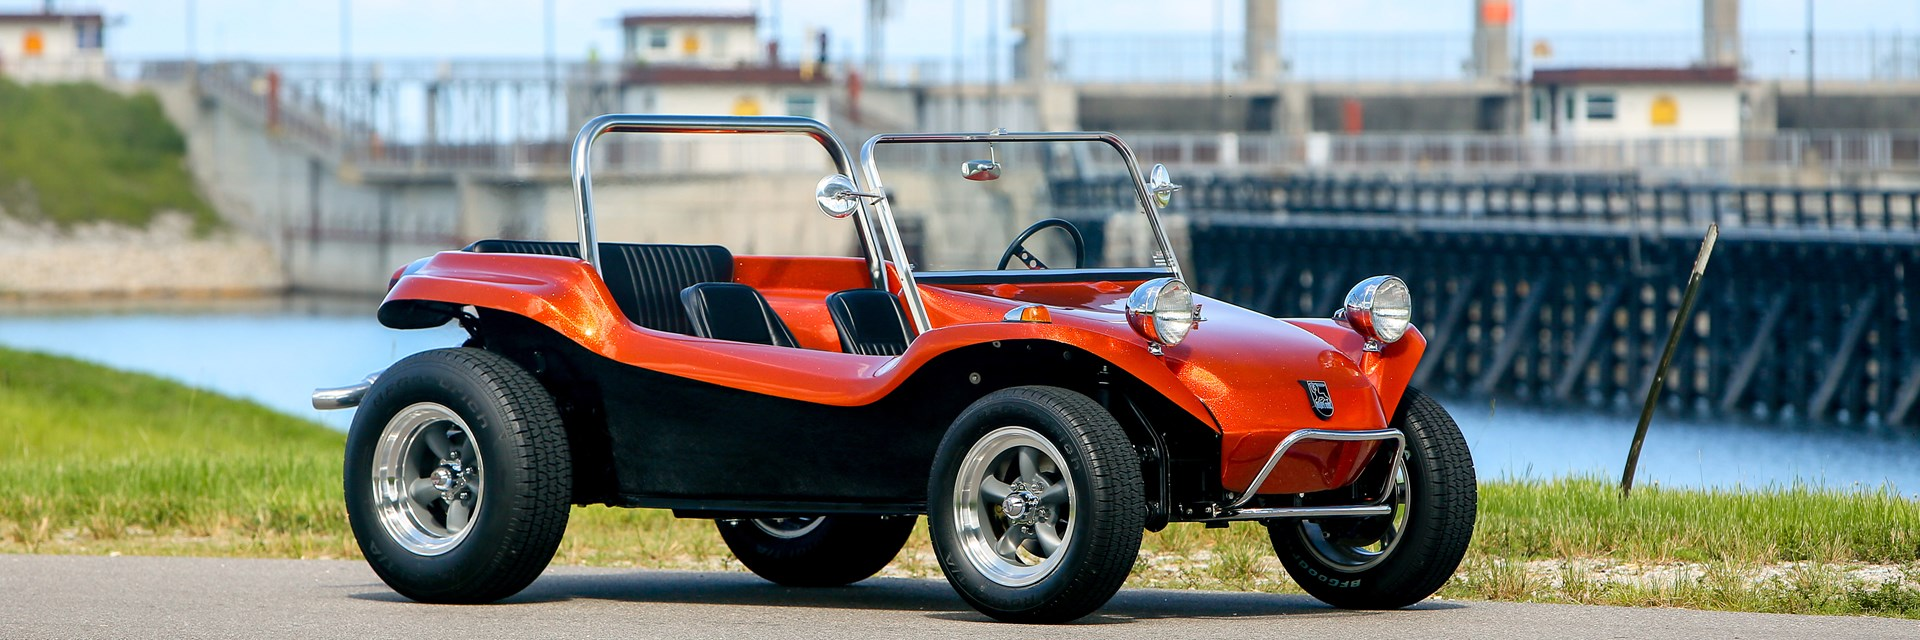 RM Sotheby's - The Meyers Manx: The Dune Buggy That